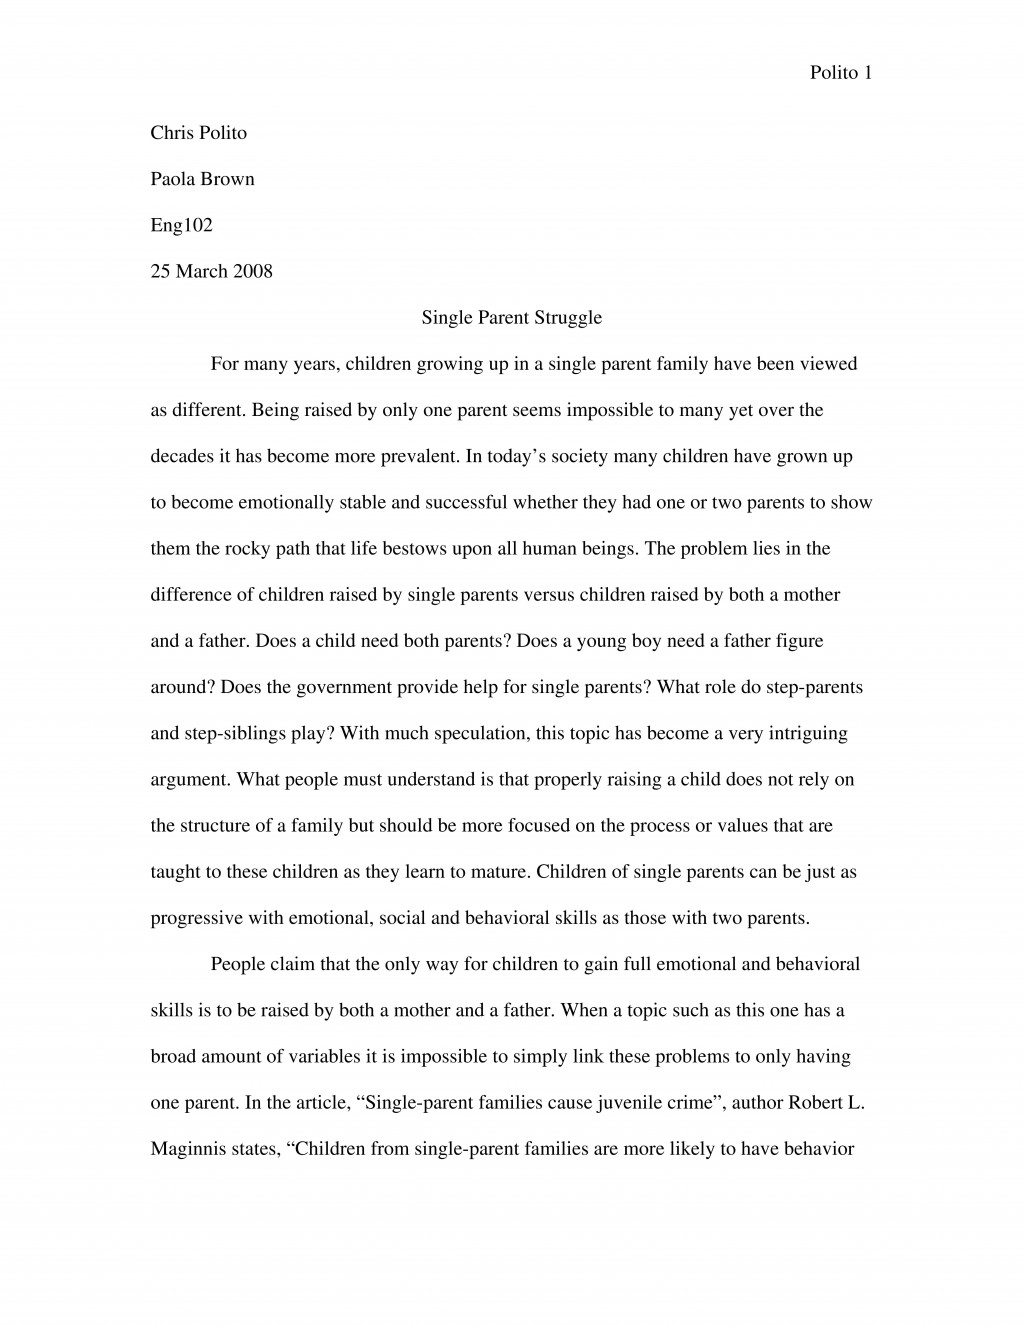 002 Essay Example Expository Sample 2 Examples Of Fantastic Essays For Middle School High Large